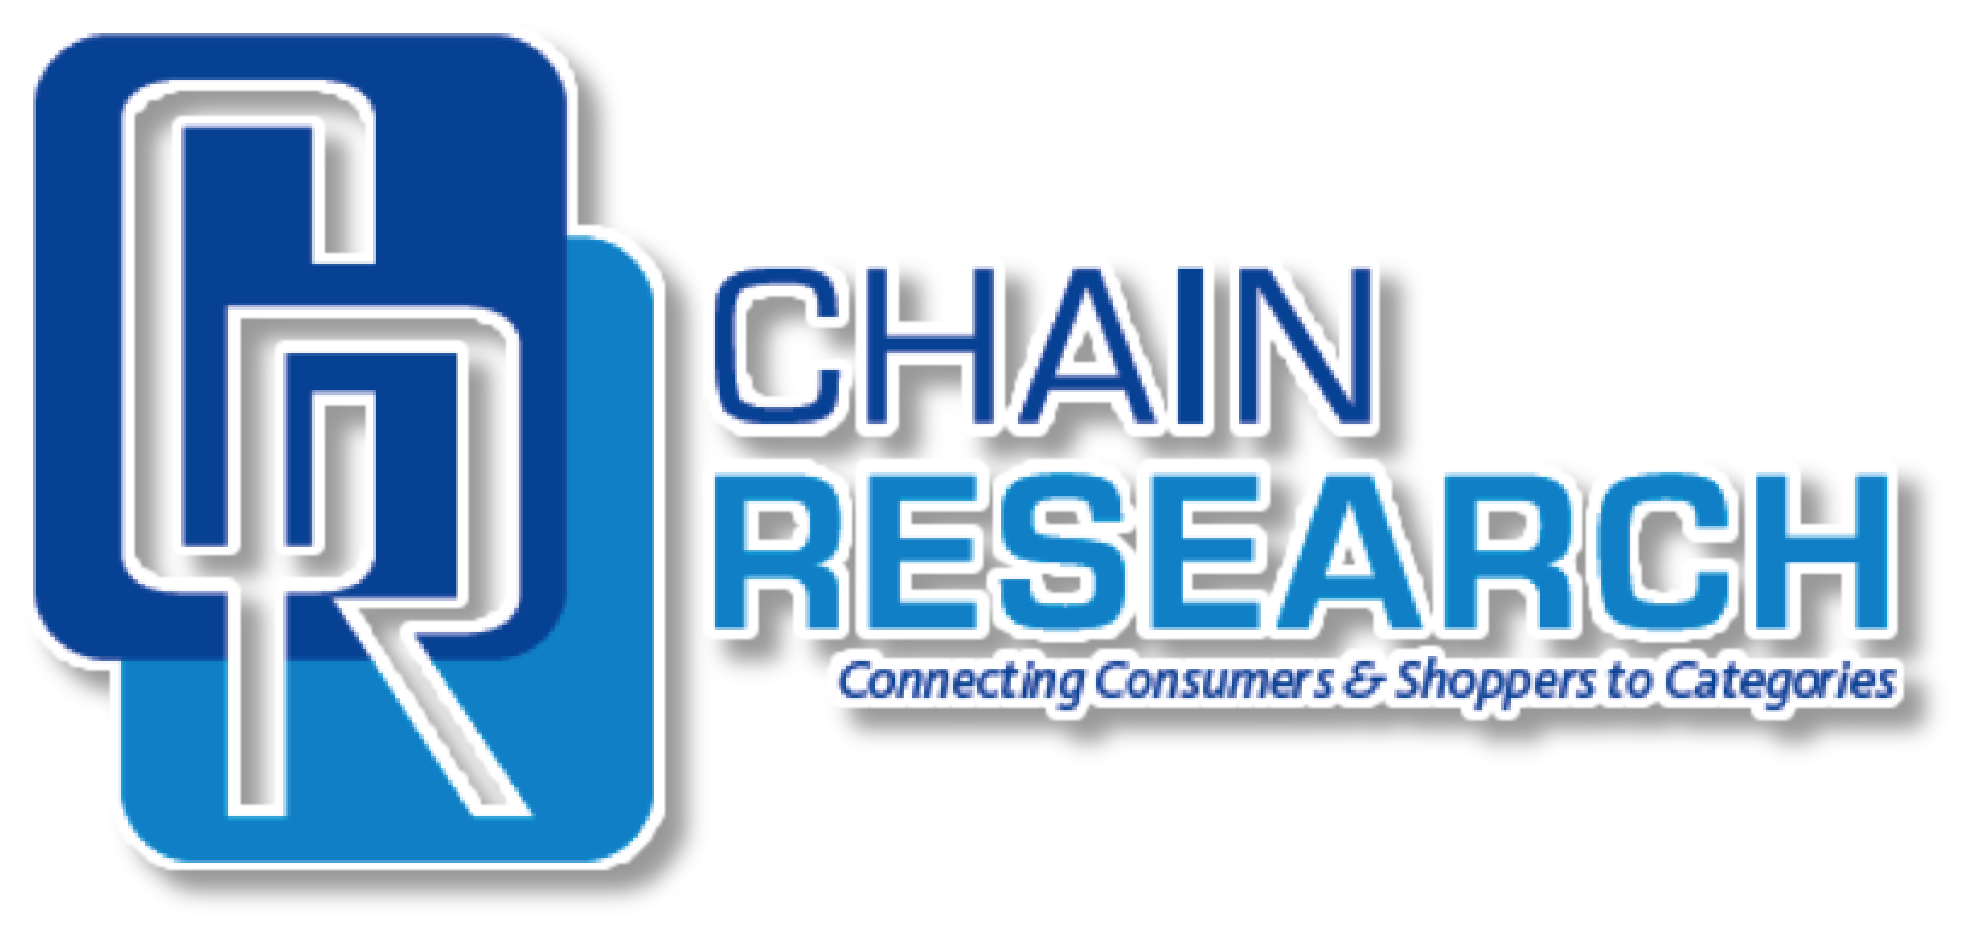 Chain Research